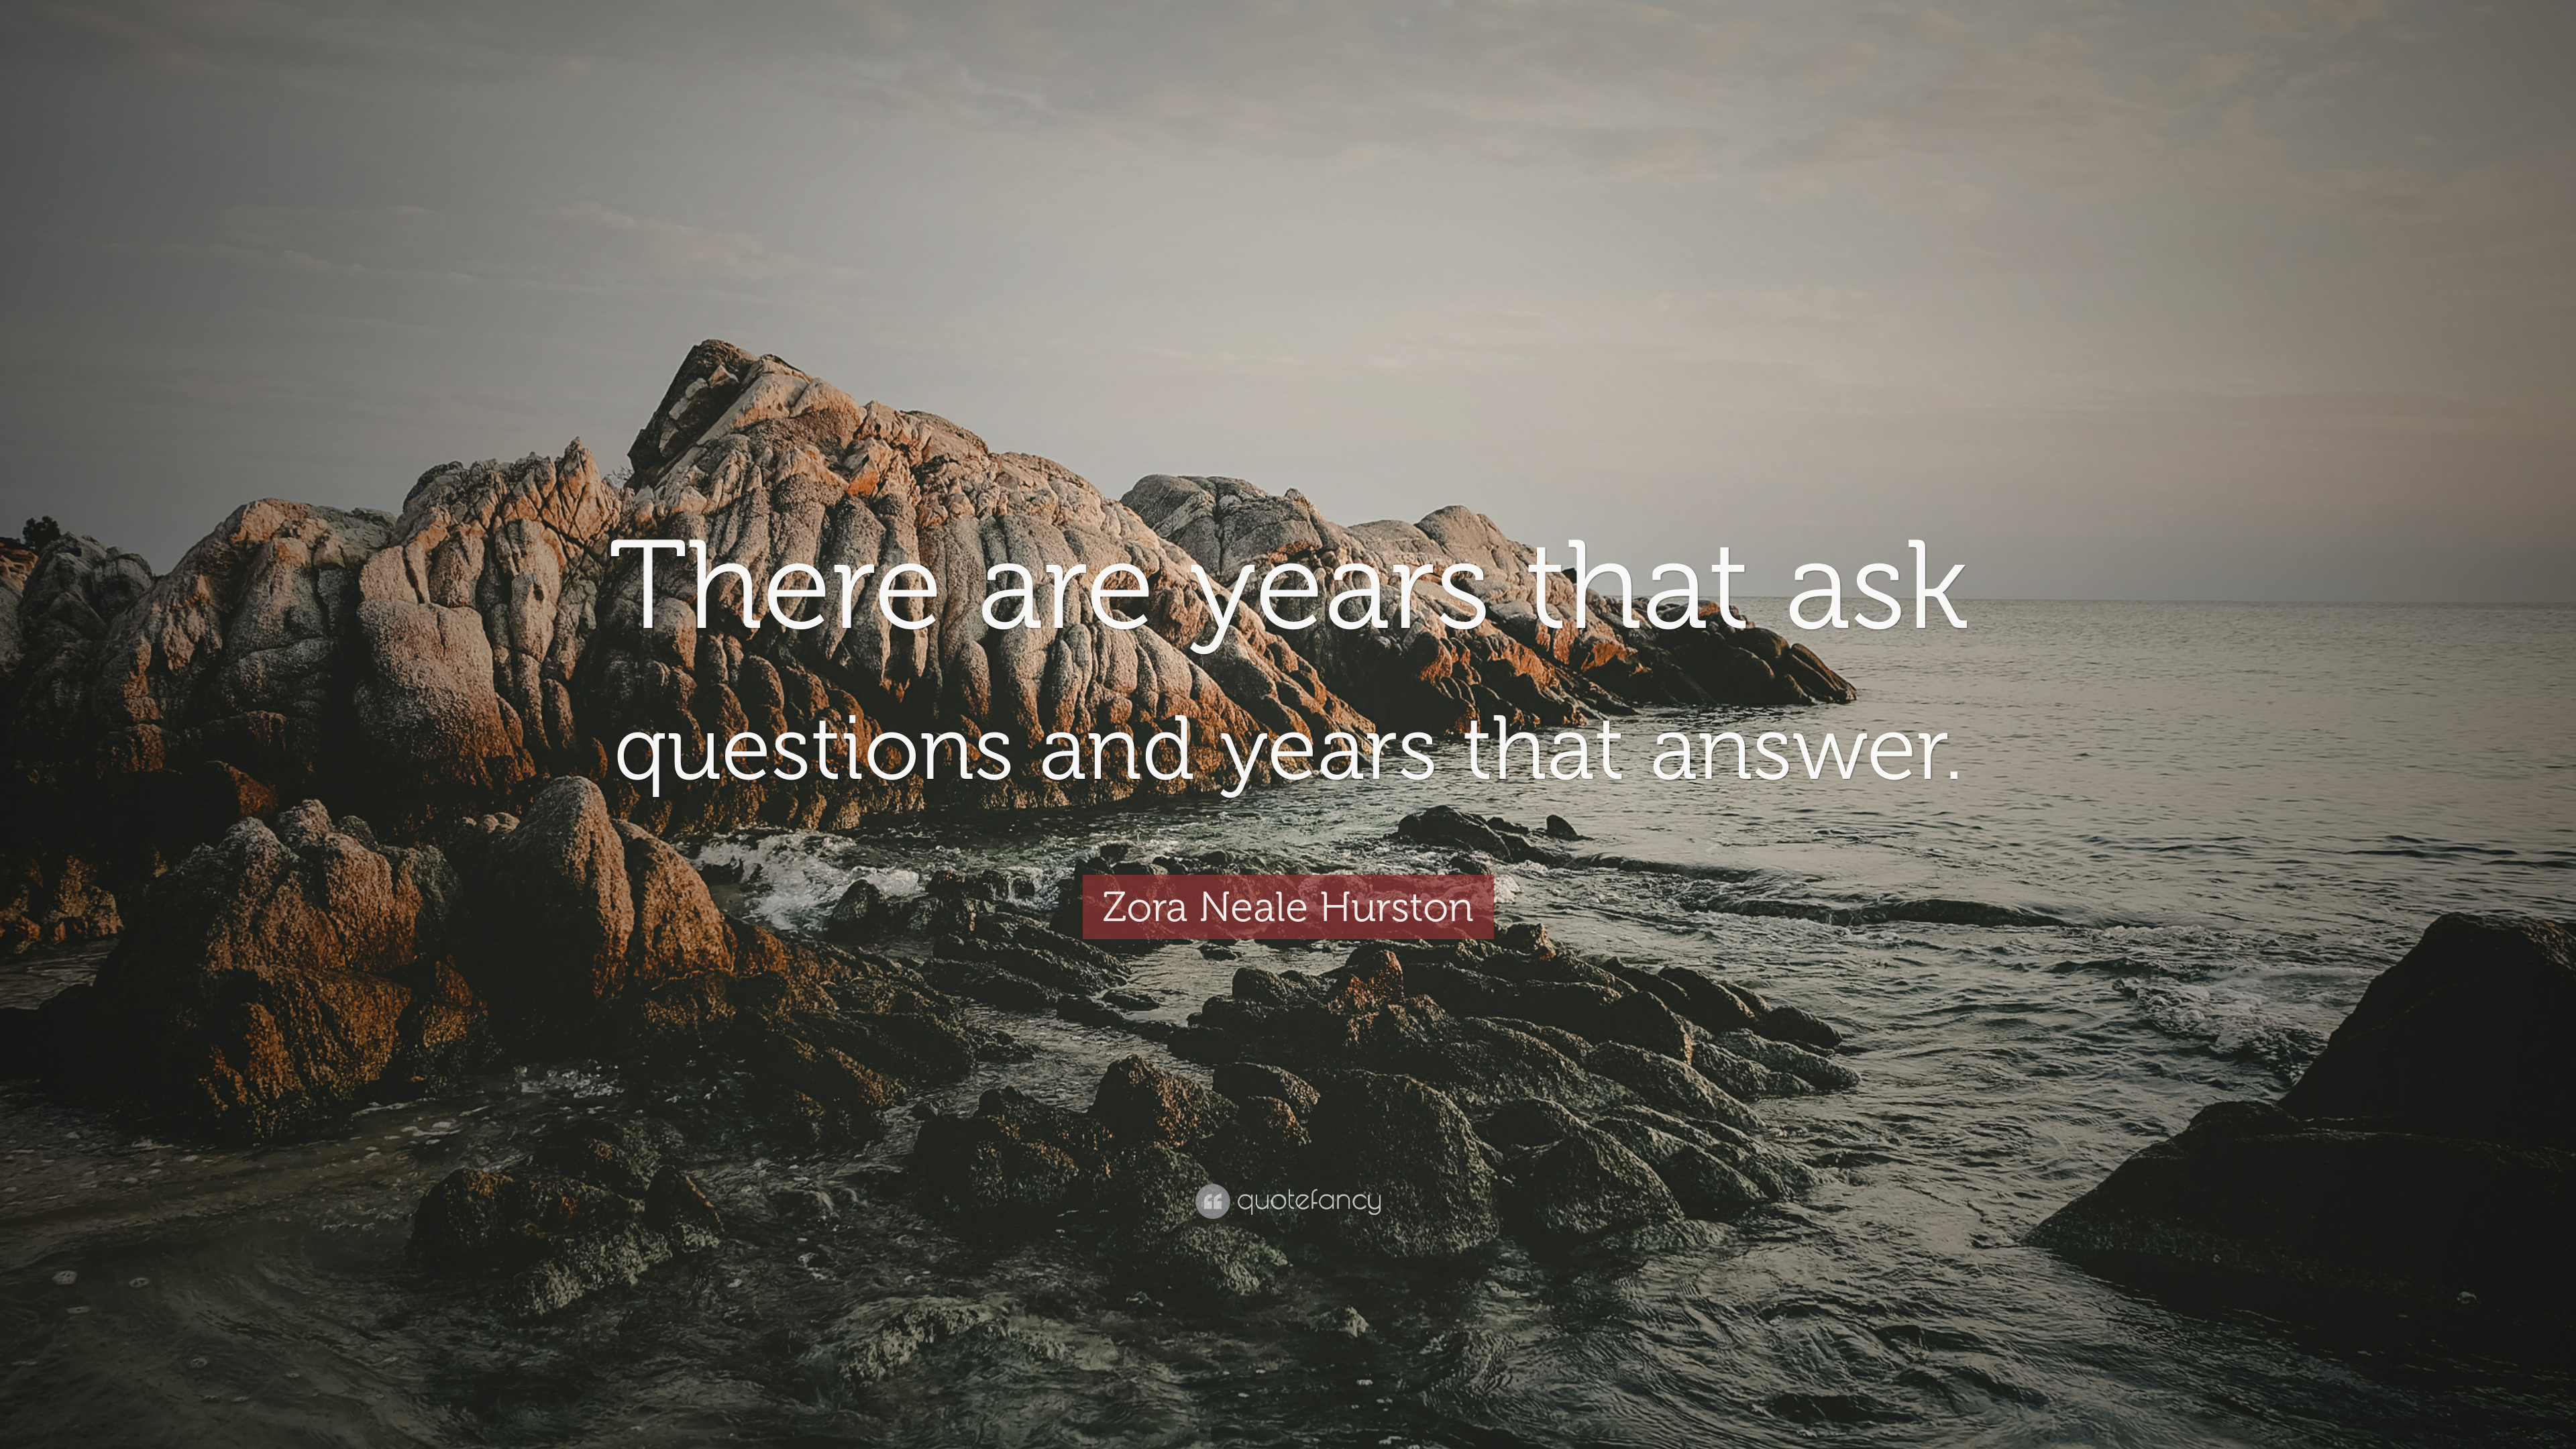 Zora Neale Hurston Quote There Are Years That Ask Questions And